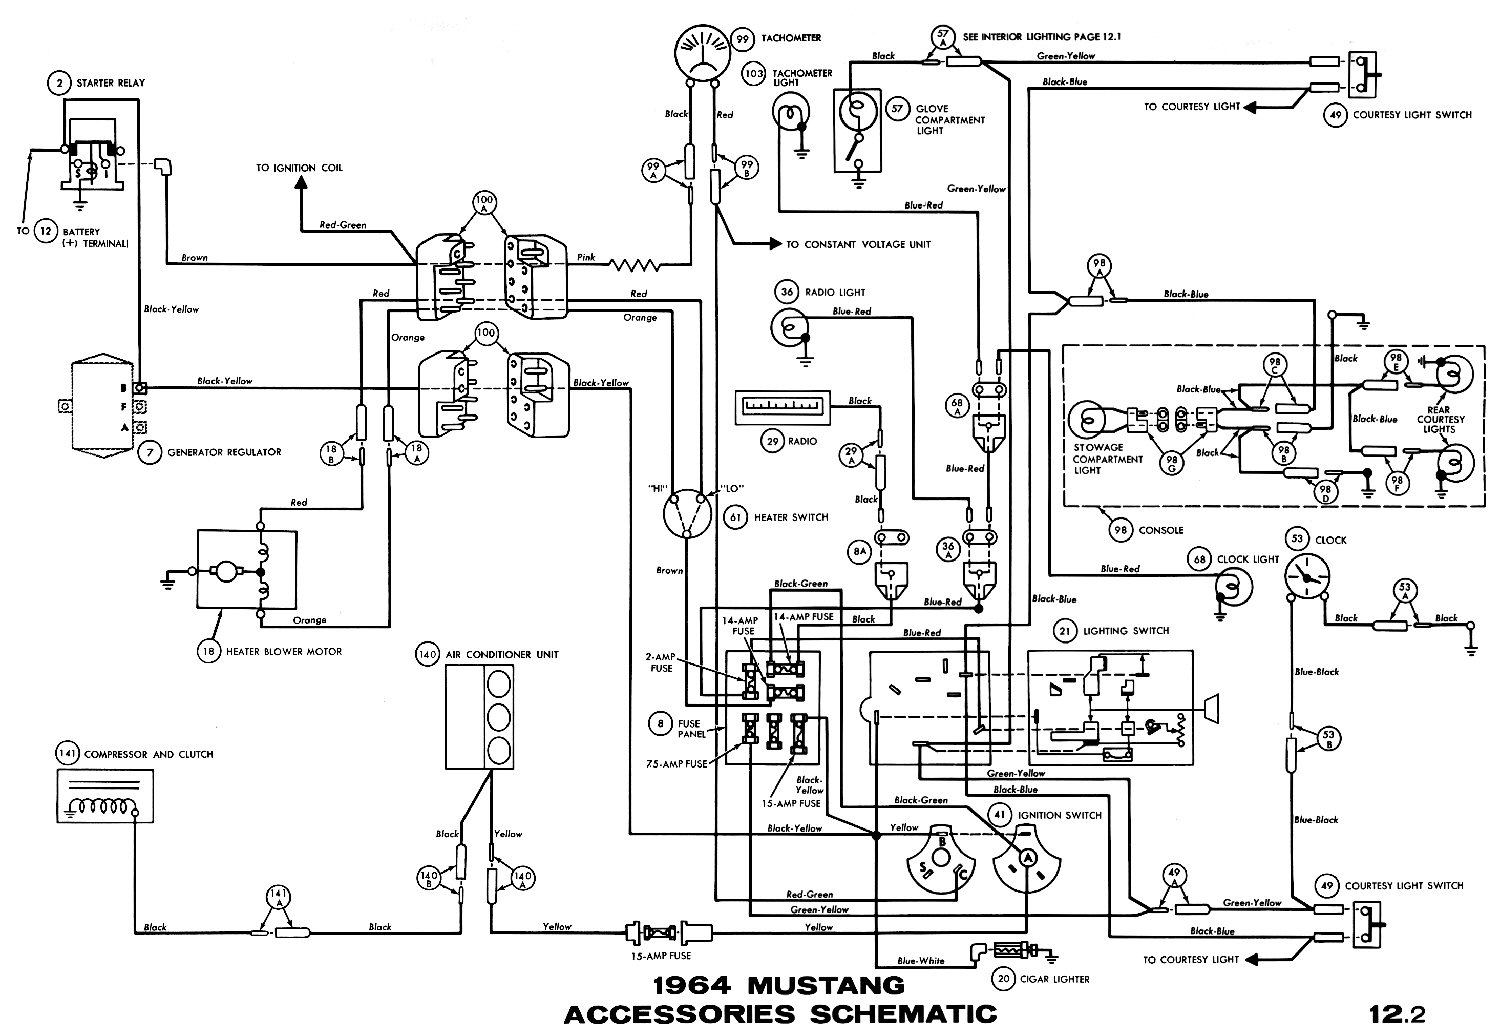 1964 Mustang Wiring Diagrams - Average Joe RestorationAverage Joe Restoration